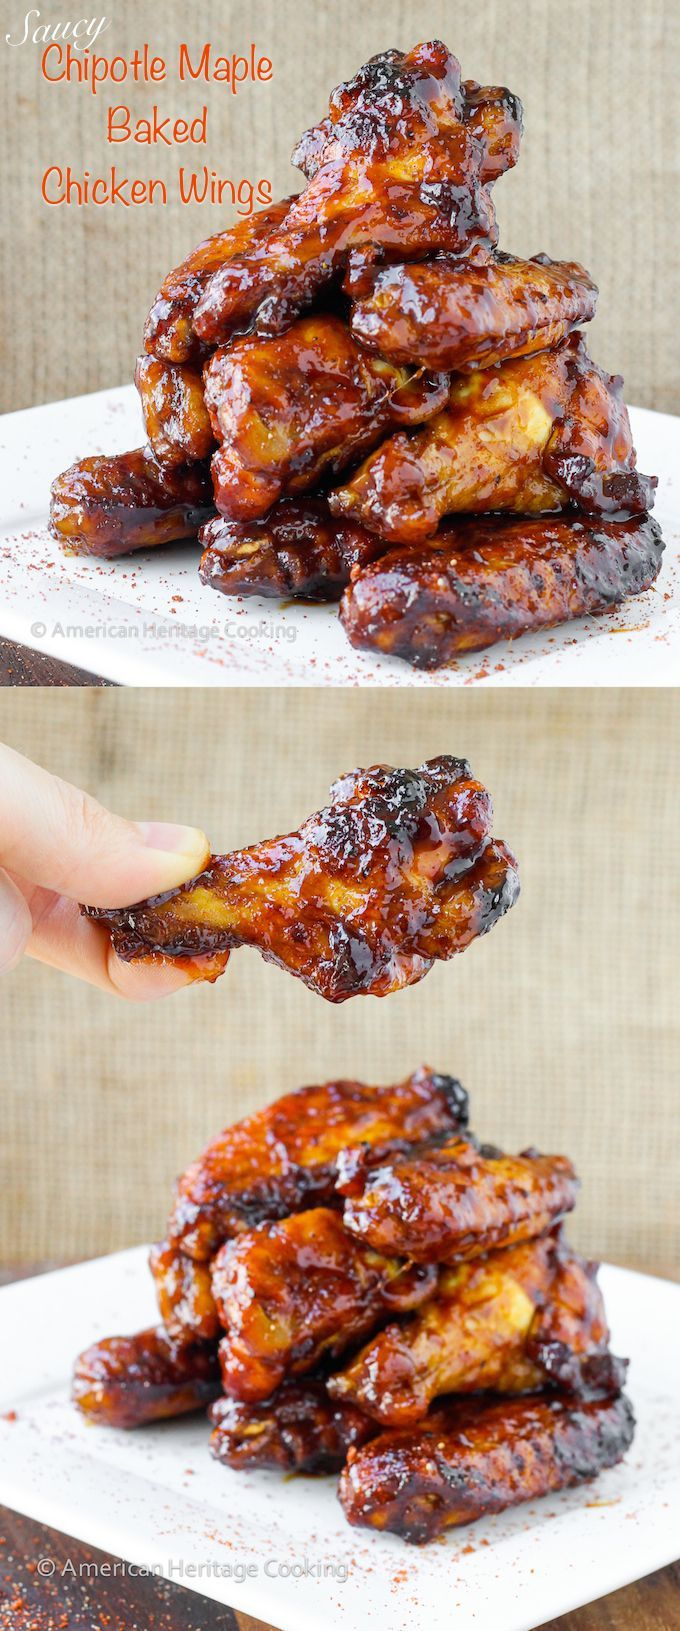 Saucy Chipotle Maple Baked Chicken Wings {GF} | An easy baked chicken wings recipe ~American Heritage Cooking: